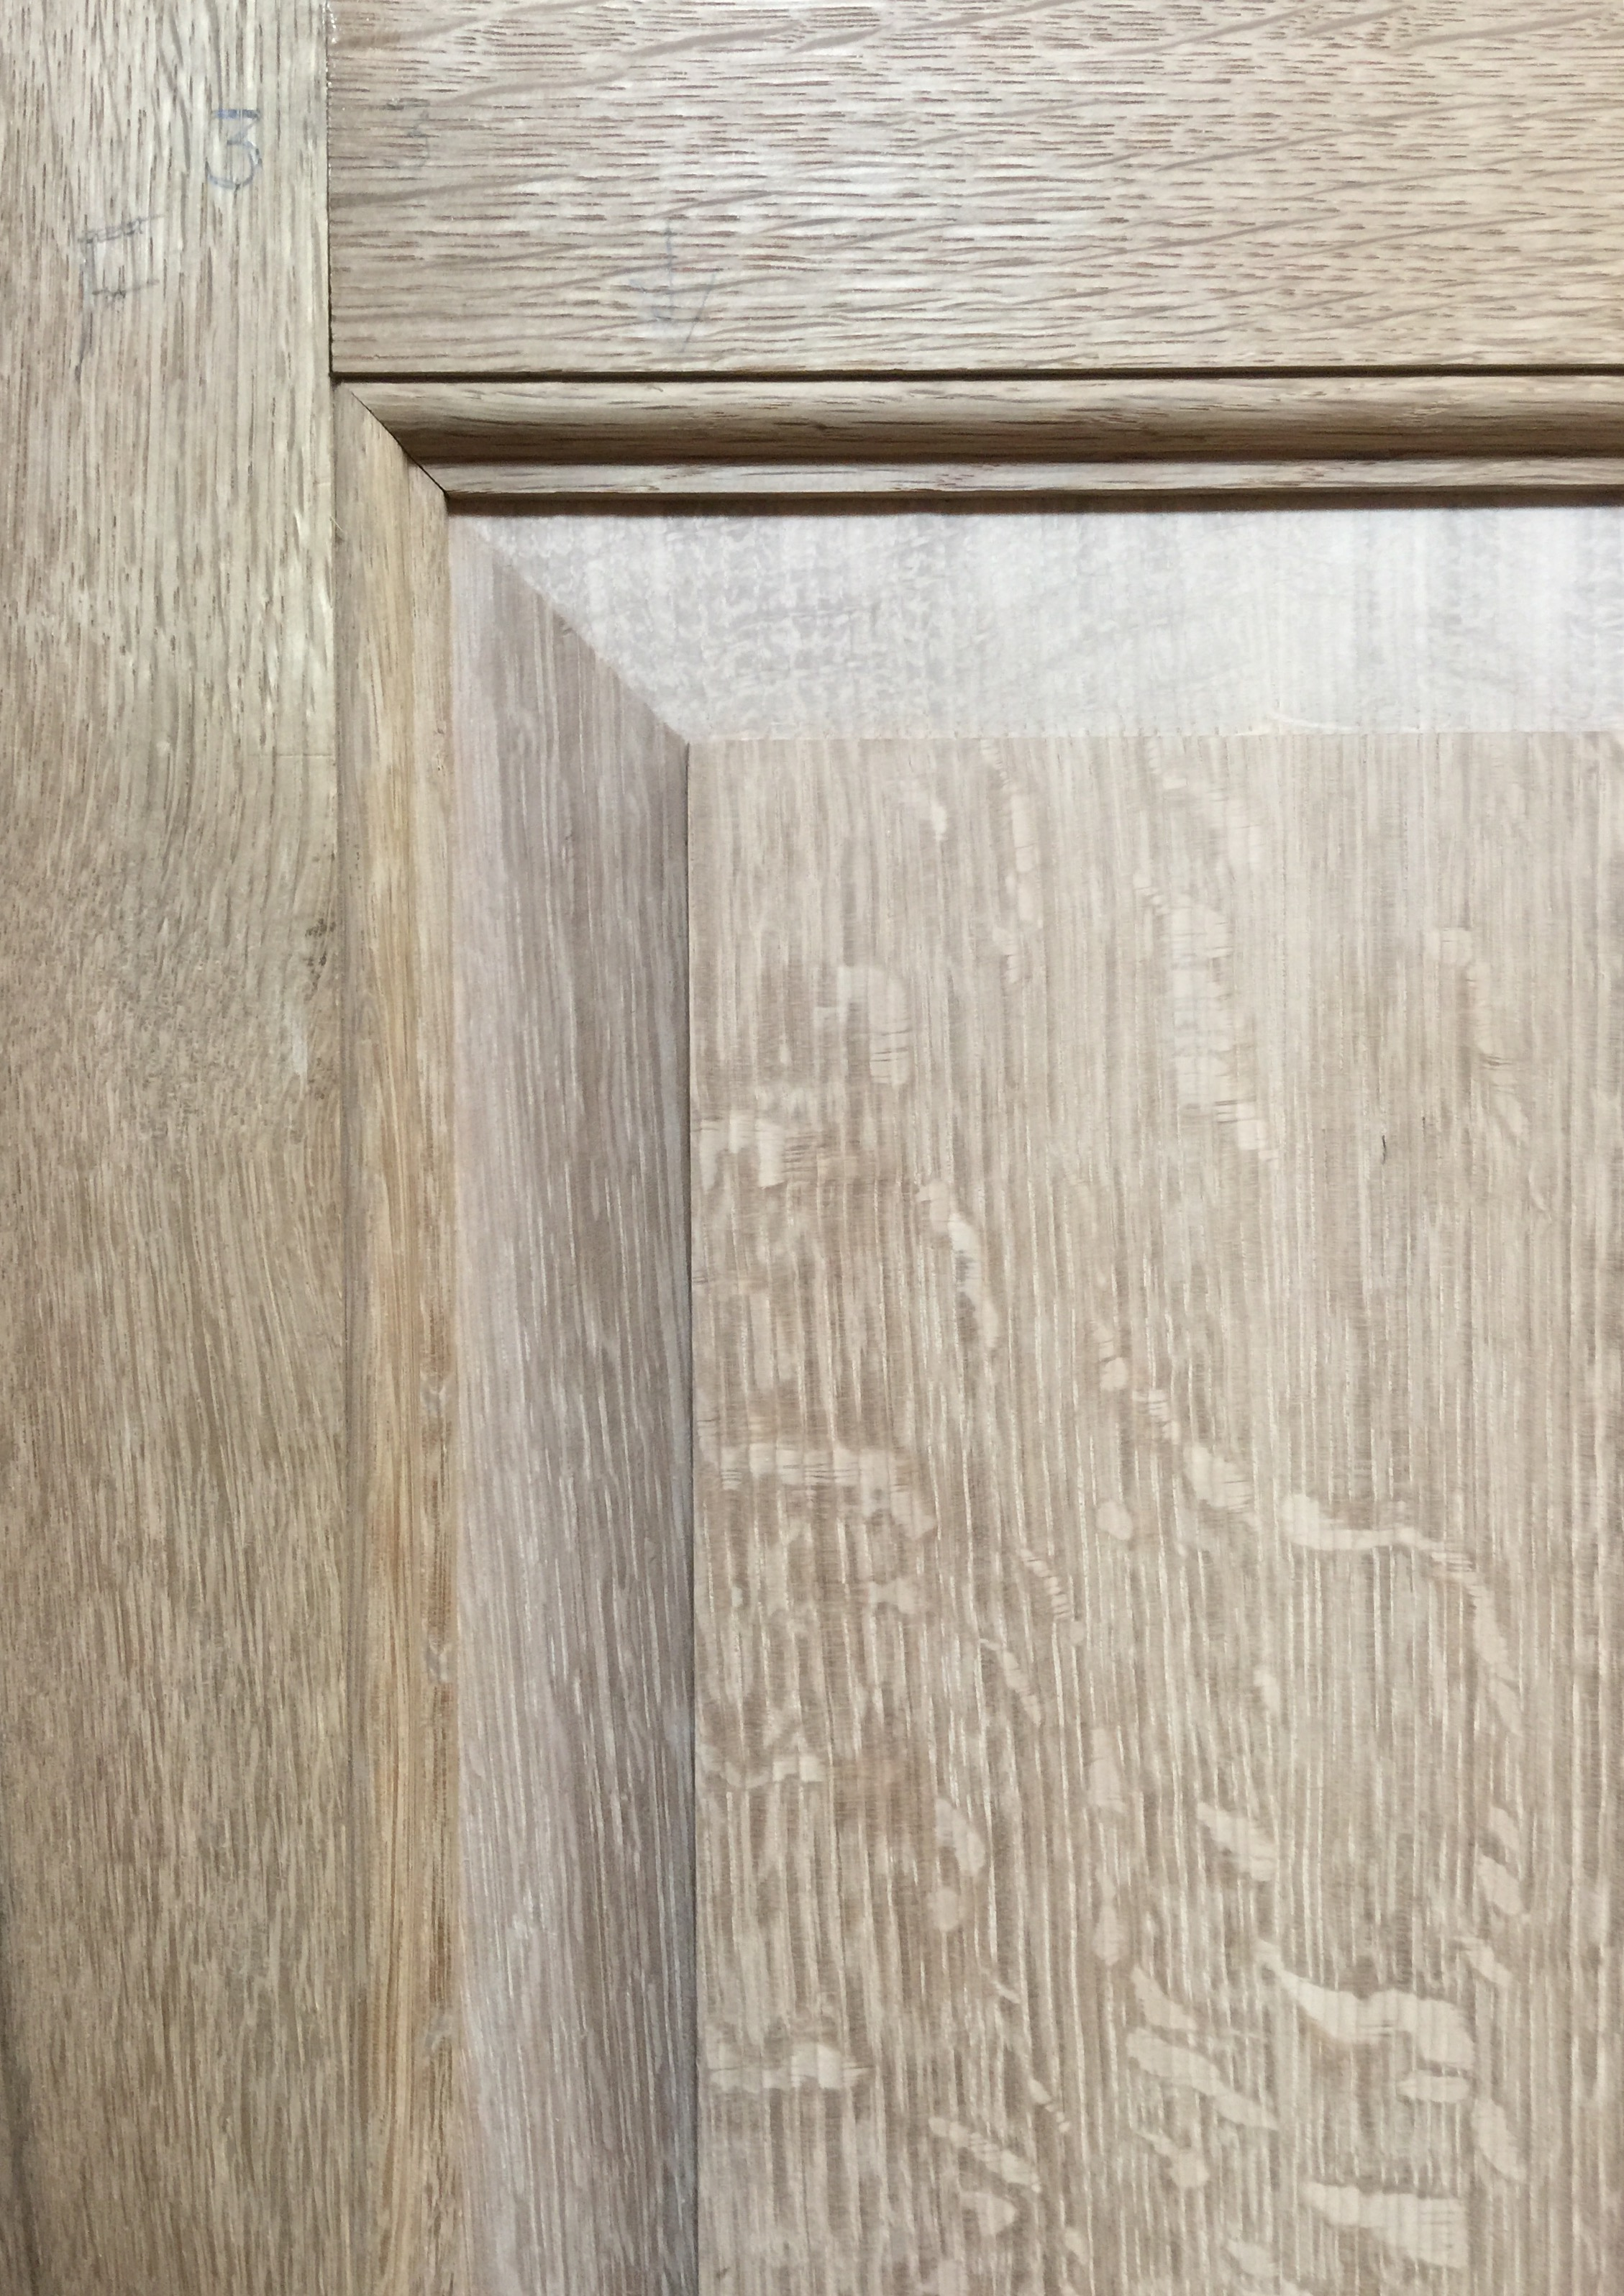 Frame and panel detail of the bookcase showing nicely figured oak and moldings made to match the English chest that inspired this piece.